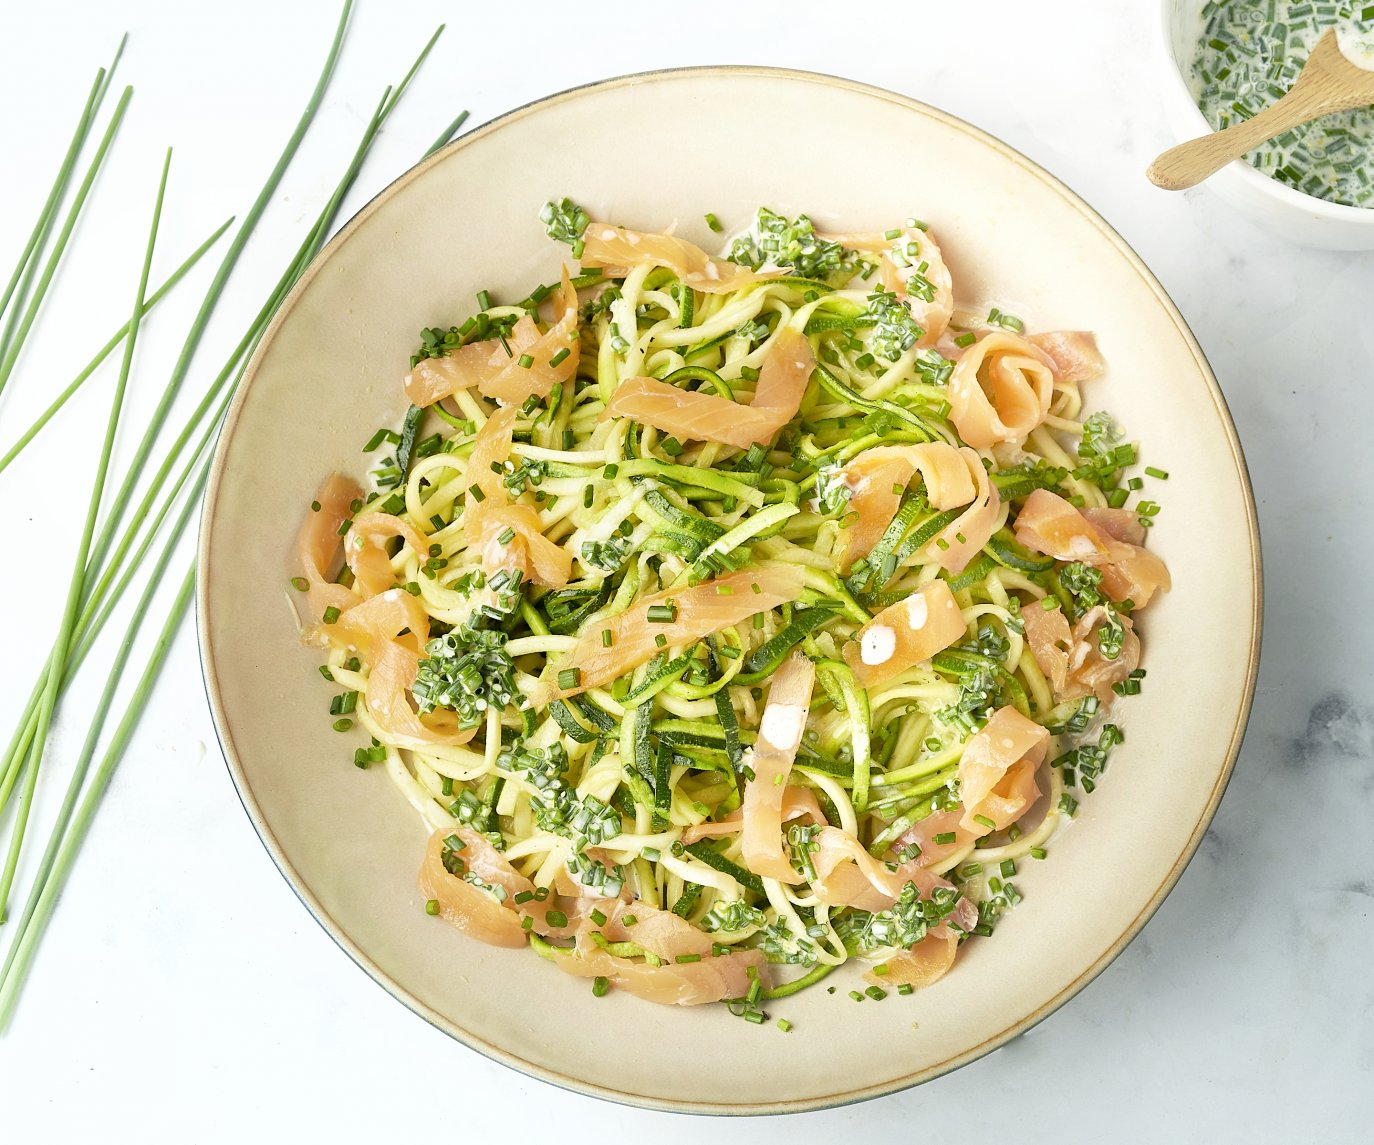 Courgettespaghetti met gerookte zalm en citroenroomsaus